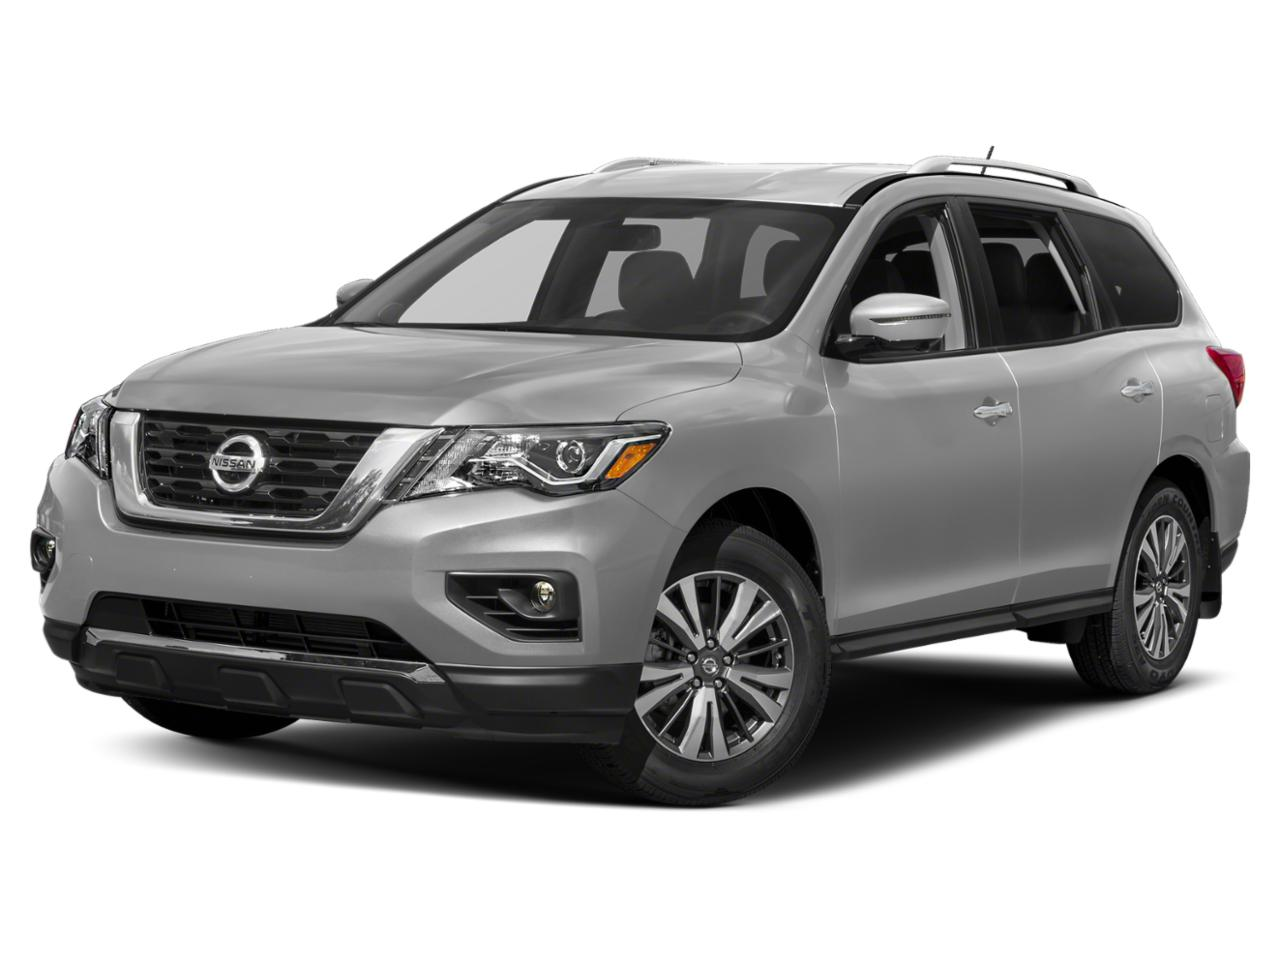 2019 Nissan Pathfinder Vehicle Photo in Owensboro, KY 42303